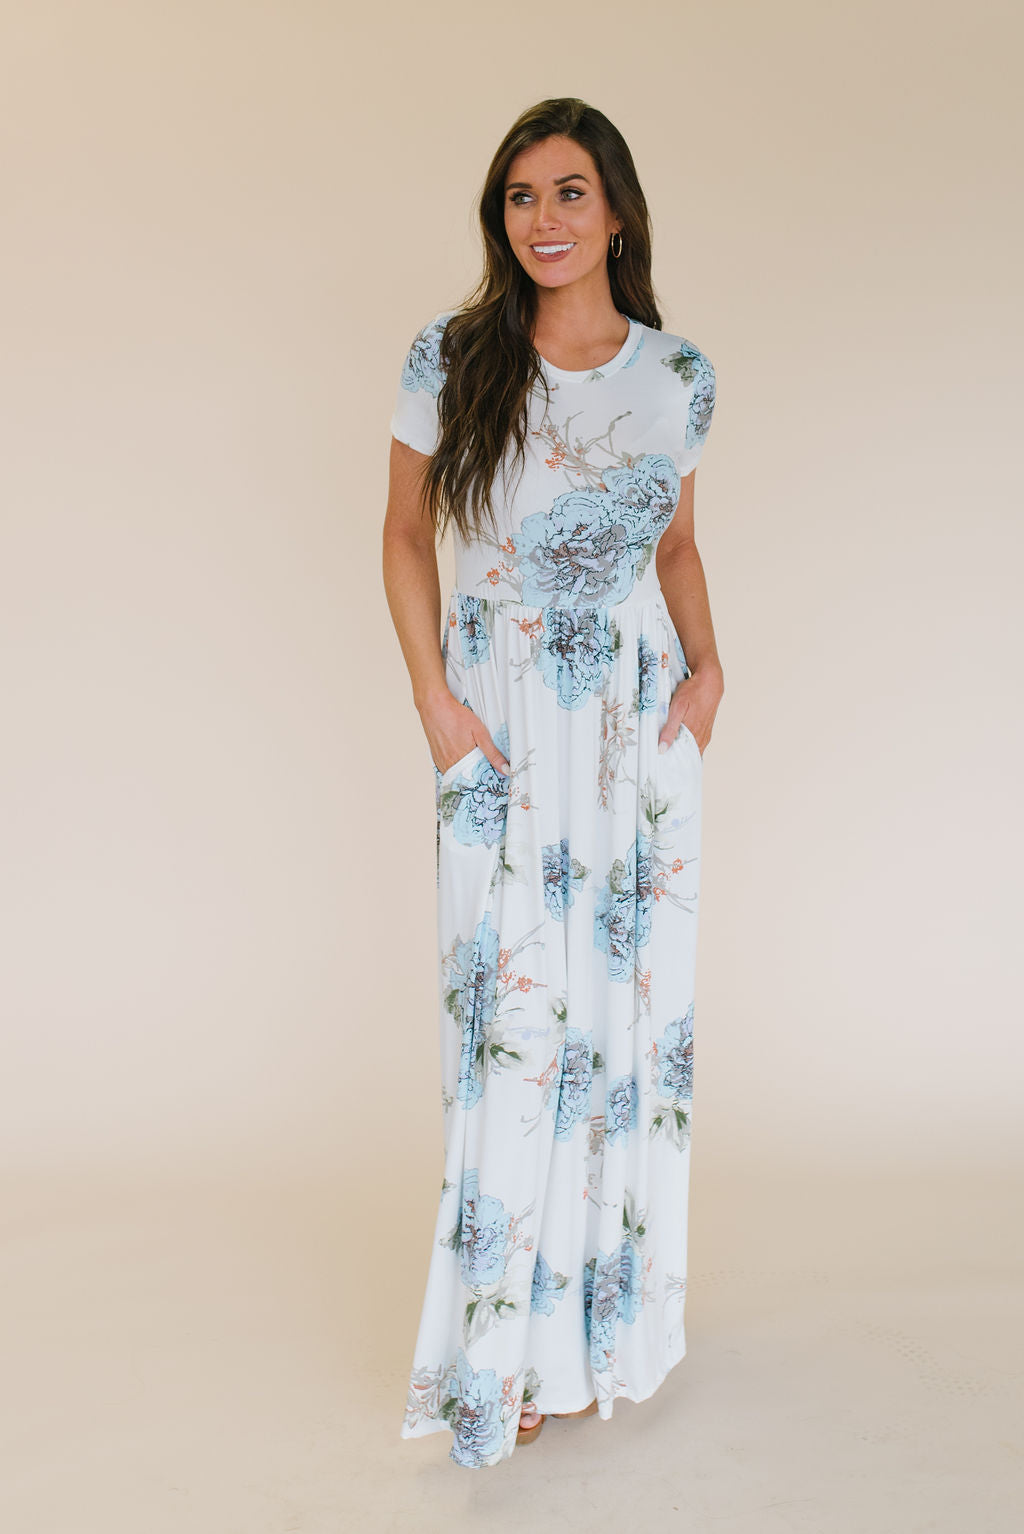 LIZ MAXI DRESS WITH HYDRANGEA'S IN BLUE